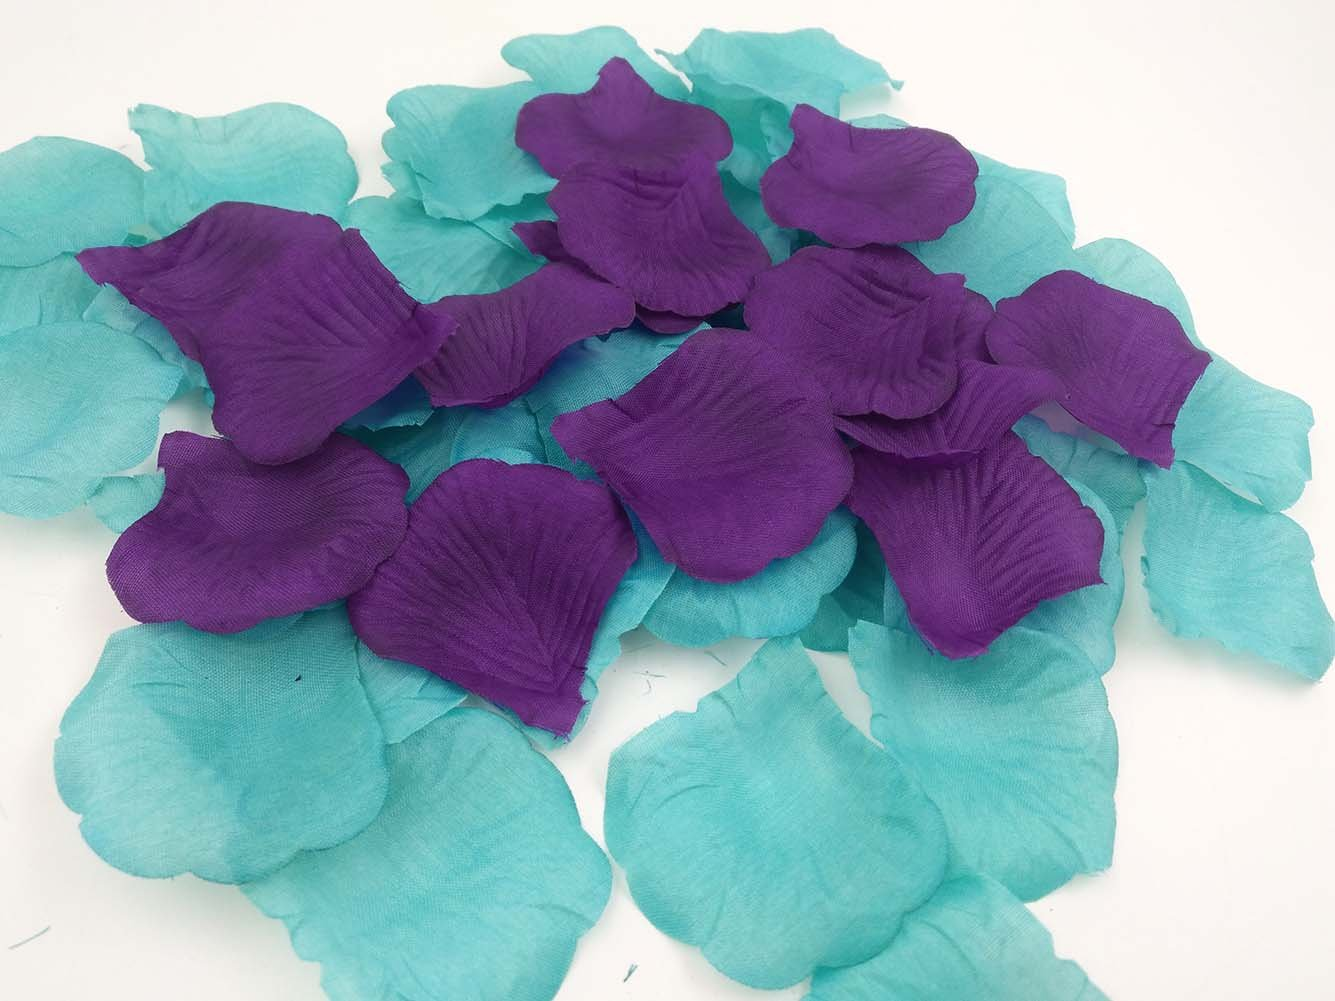 1000PCS-Multicolor-Faux-Flower-Girl-Rose-Petals-Dark-Purple-and-Turquoise-Wedding-Decorations-Reception-Table-Scatter-Floor-Confetti-Bridal-Shower-Party-Supplies